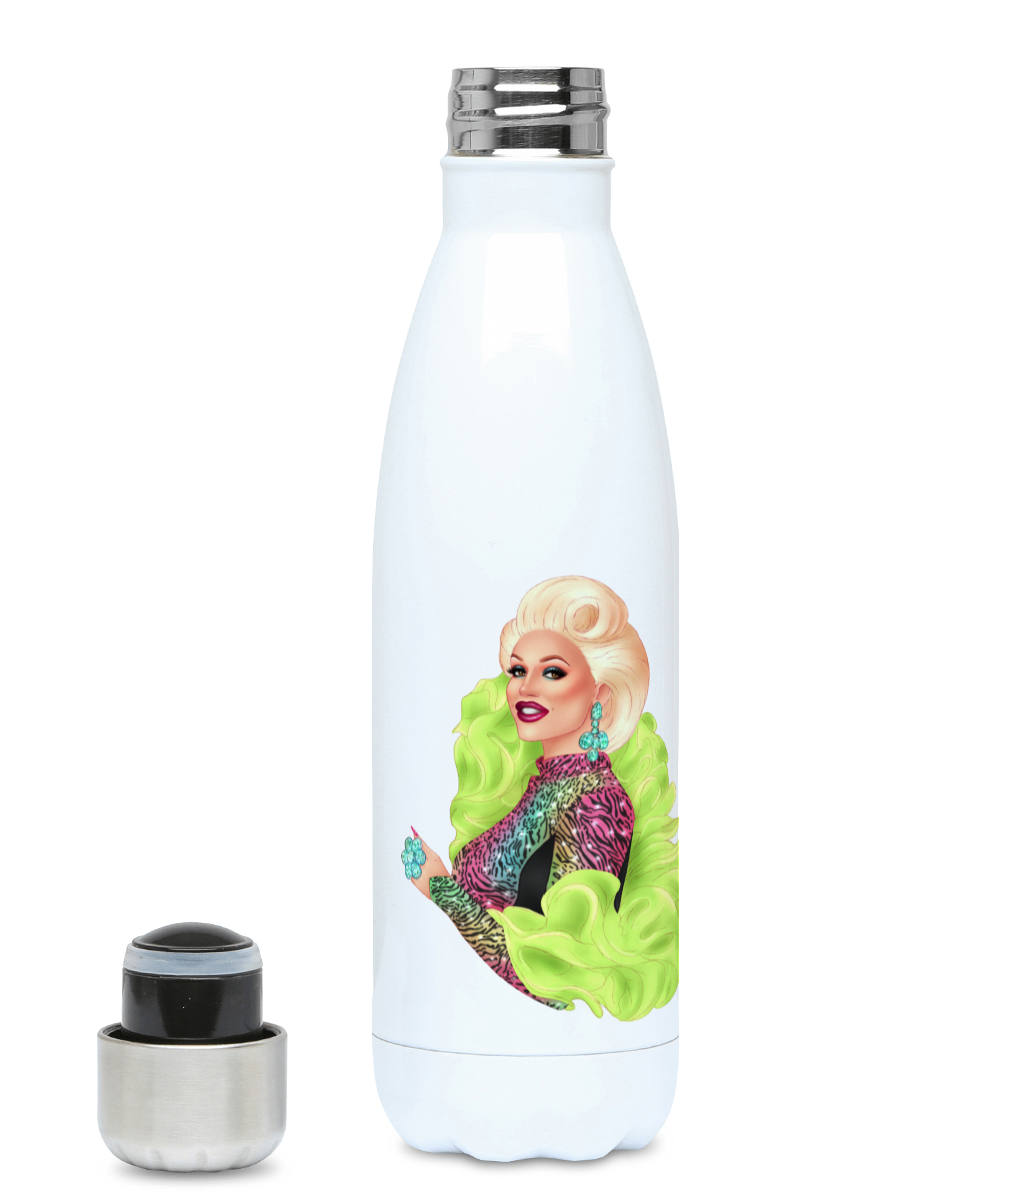 Megan Schoonbrood - Water Bottle